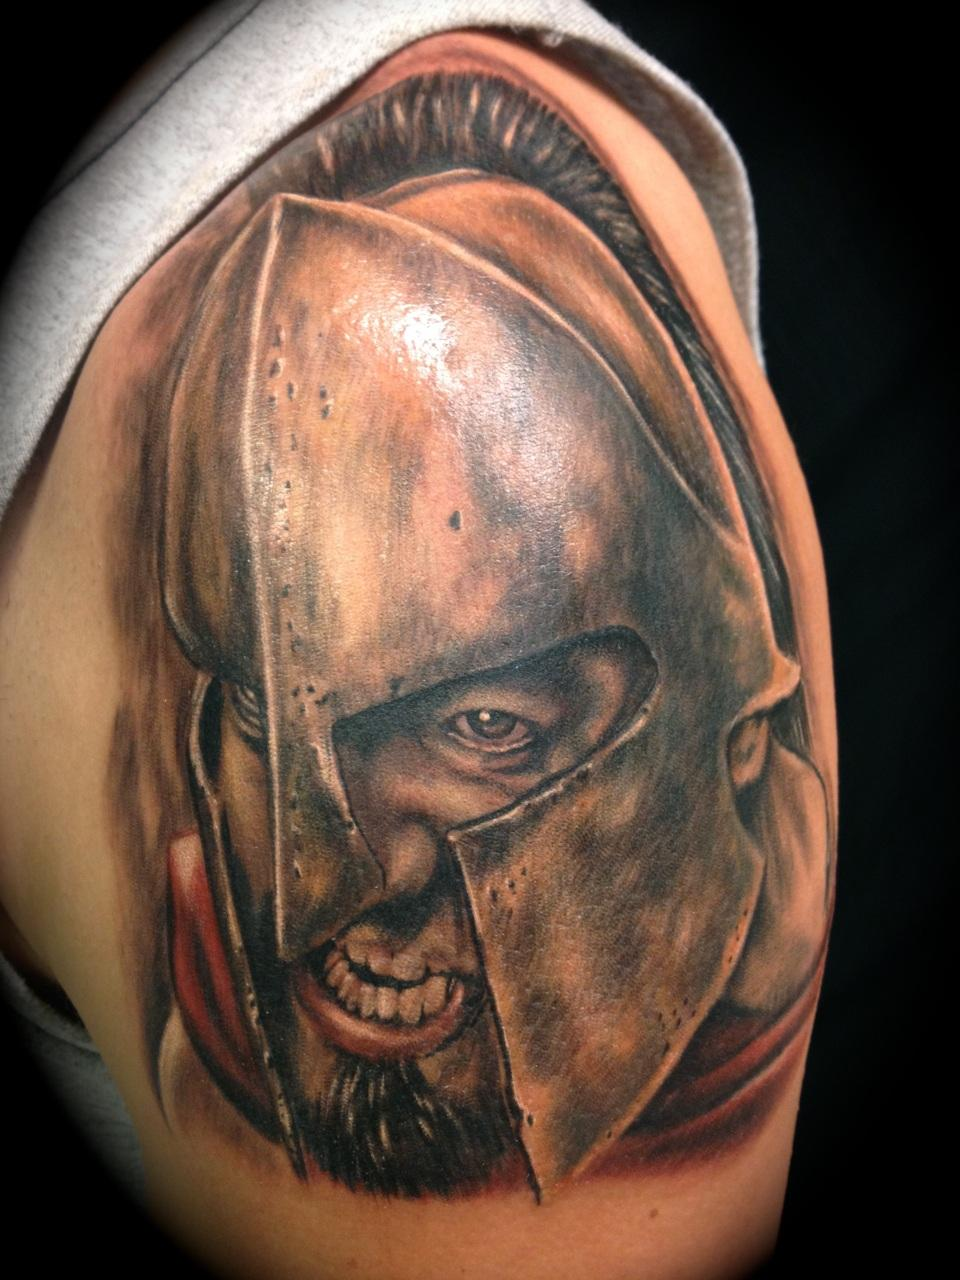 Cute Spartan Head In Helmet Tattoo On Shoulder For Boys